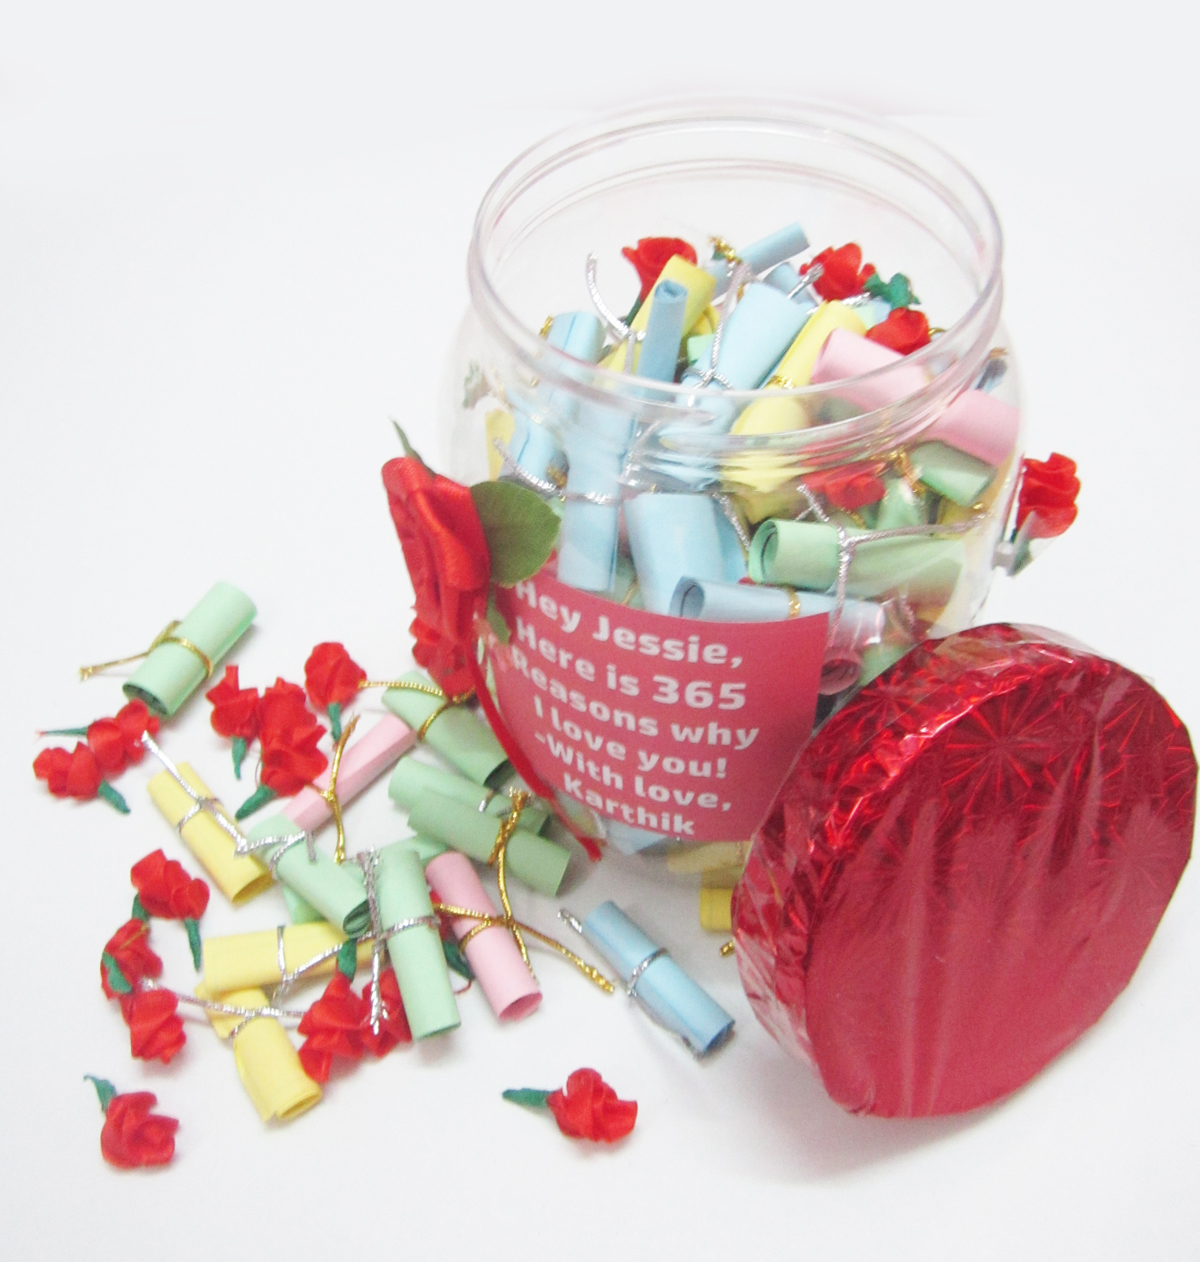 365 Reasons Why I Love You Personalized Gift Box